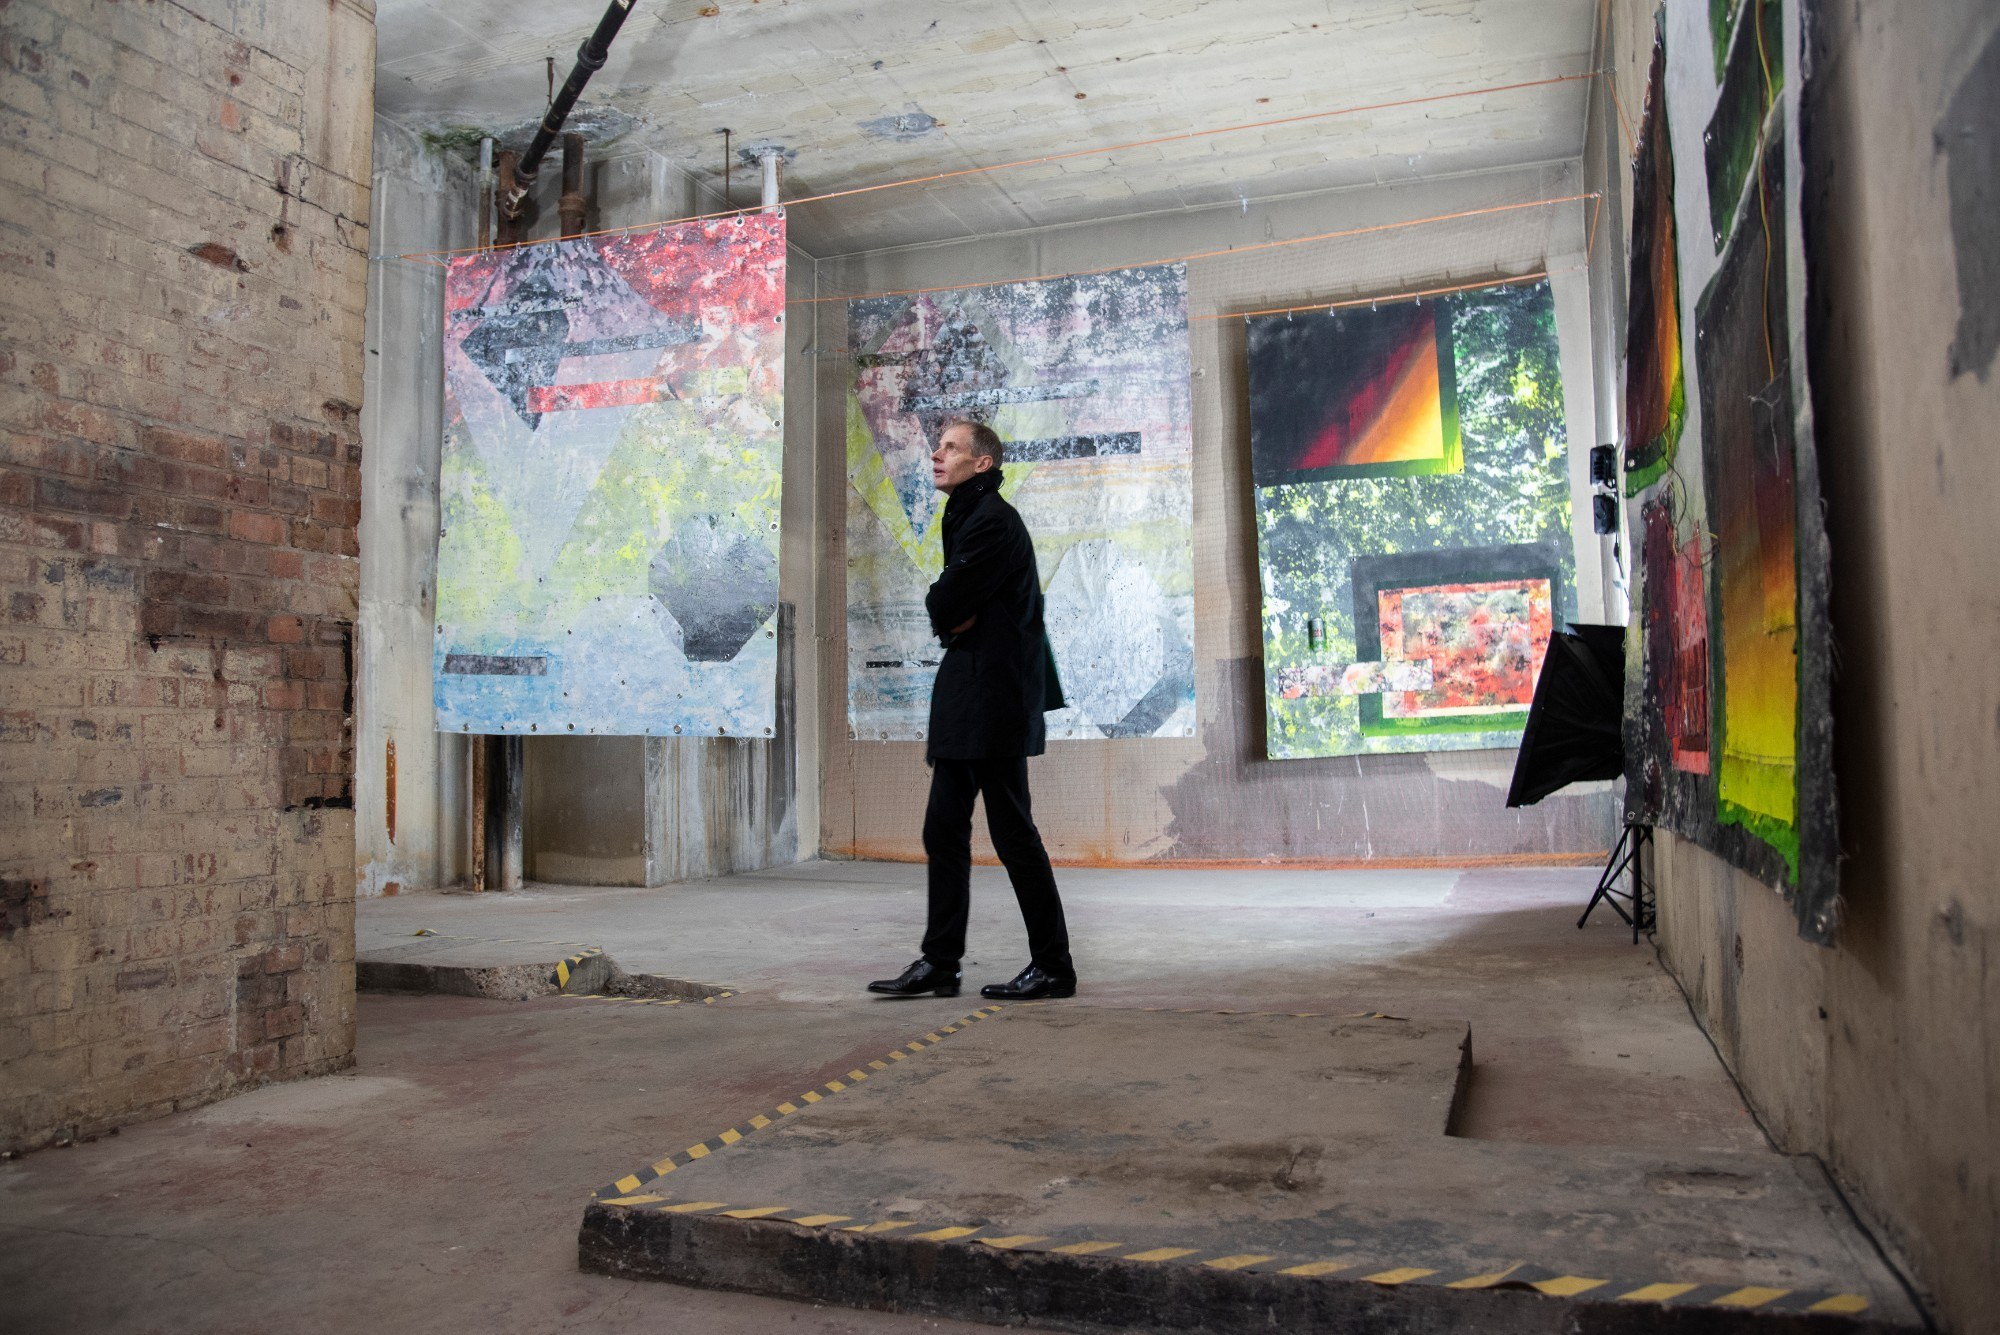 Man looking at large abstract paintings in room with concrete walls